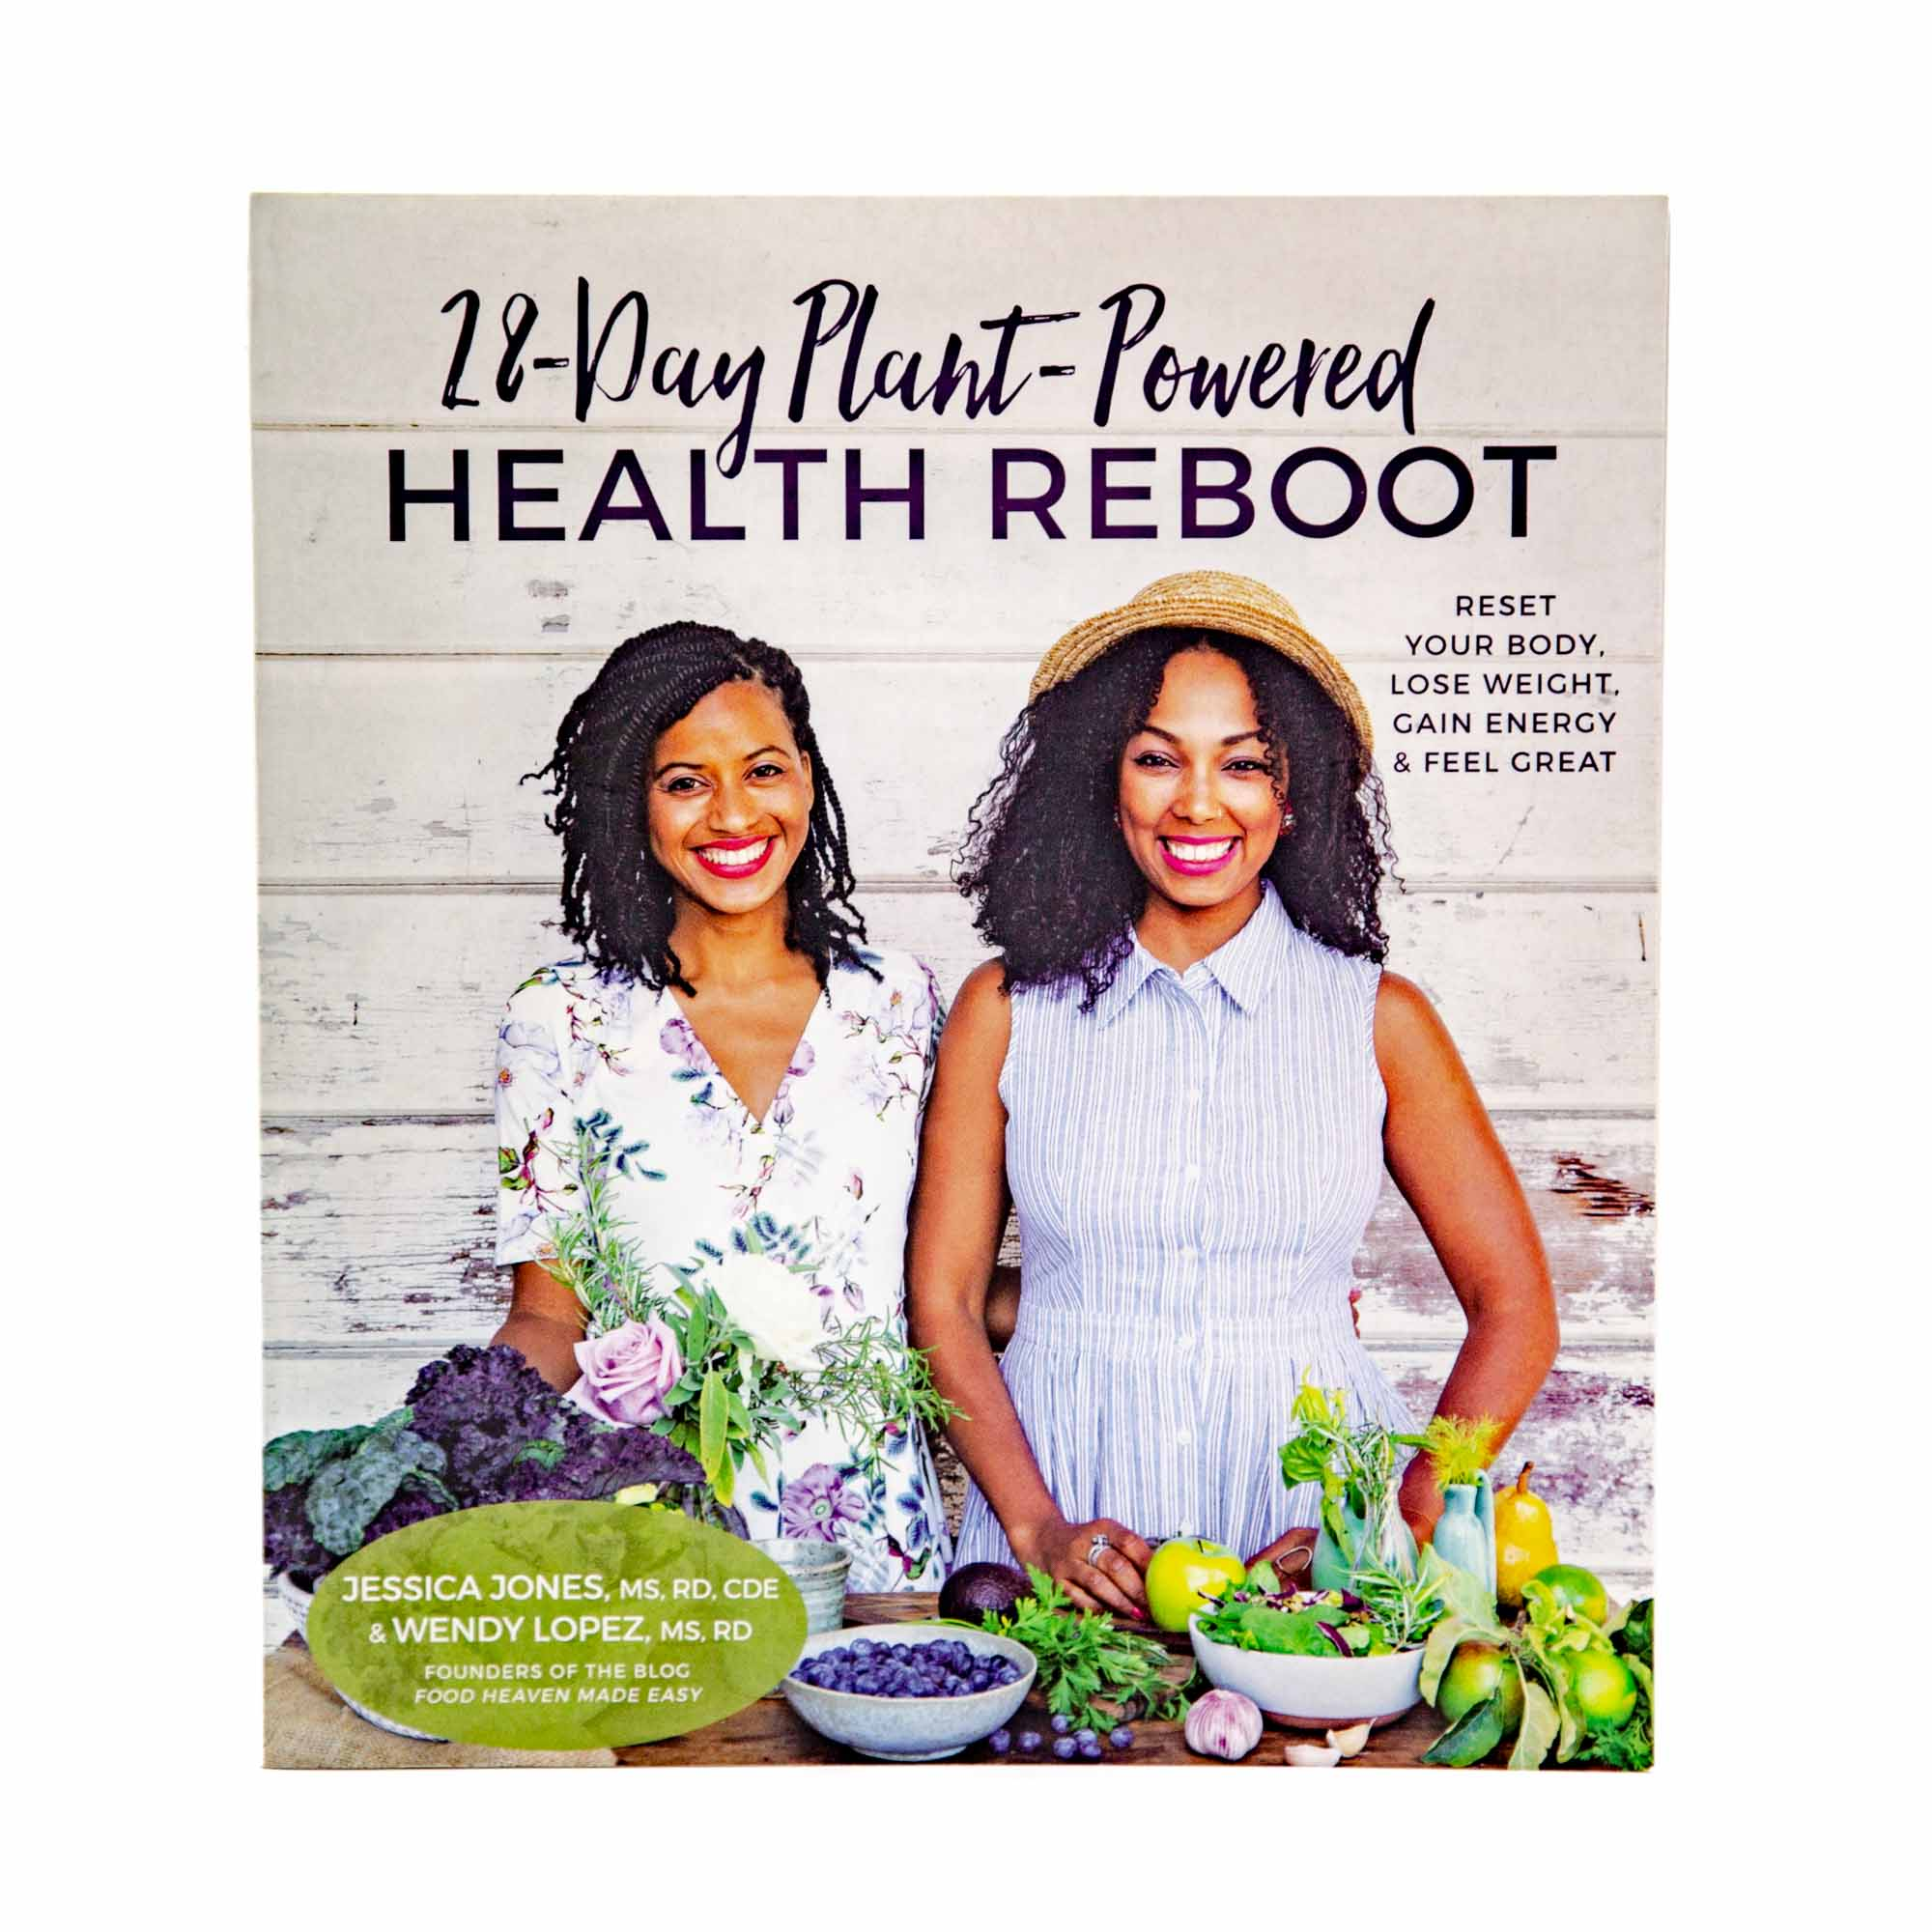 28 Day Plant-Powered Health Reboot - Mortise And Tenon